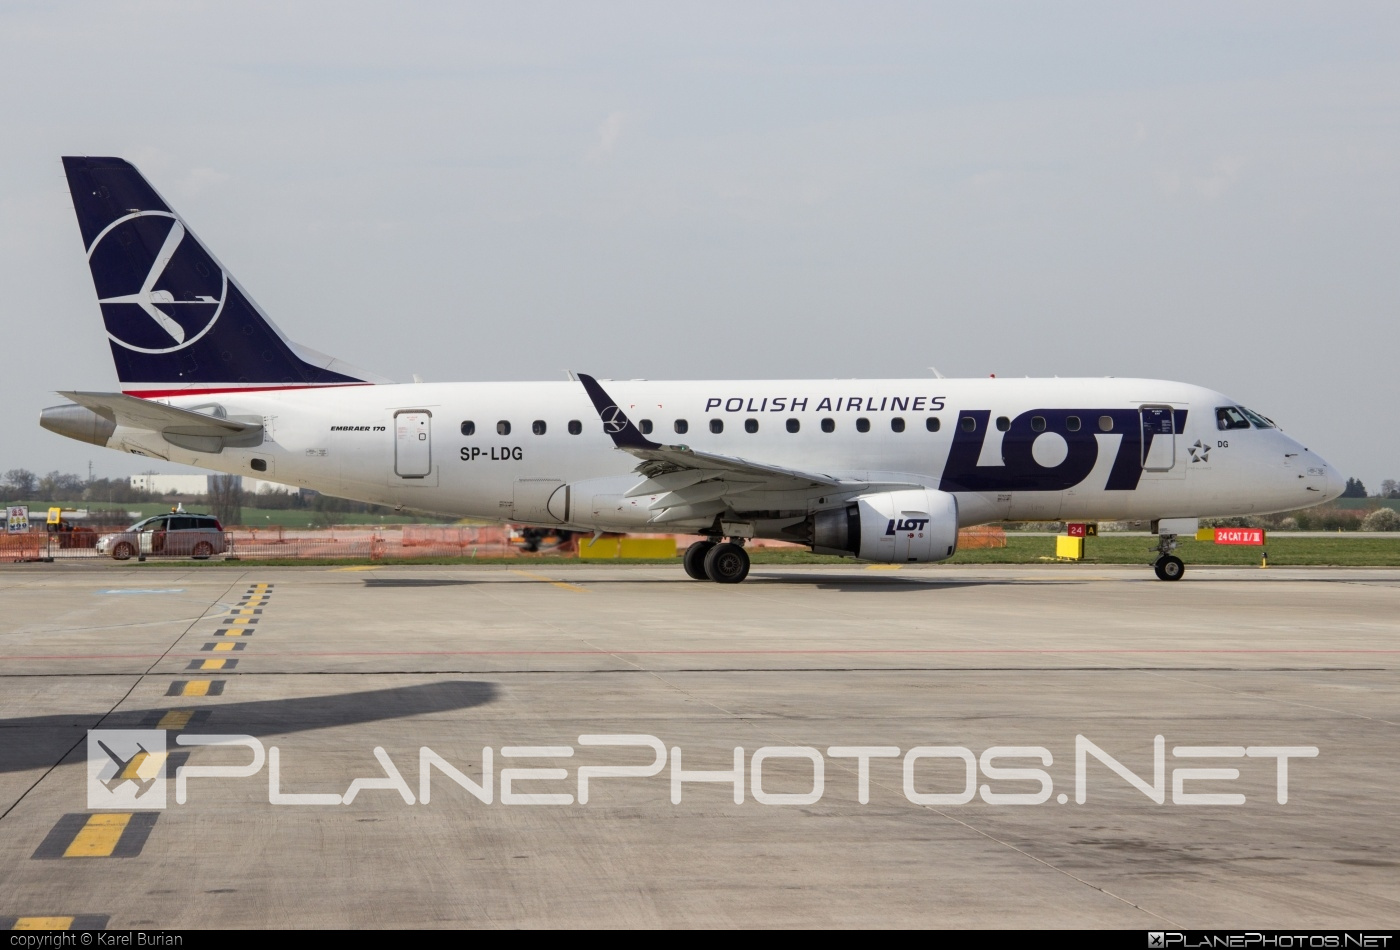 Embraer E170LR (ERJ-170-100LR) - SP-LDG operated by LOT Polish Airlines #e170 #embraer #embraer170 #embraer170lr #erj170 #erj170100 #erj170100lr #erj170lr #lot #lotpolishairlines